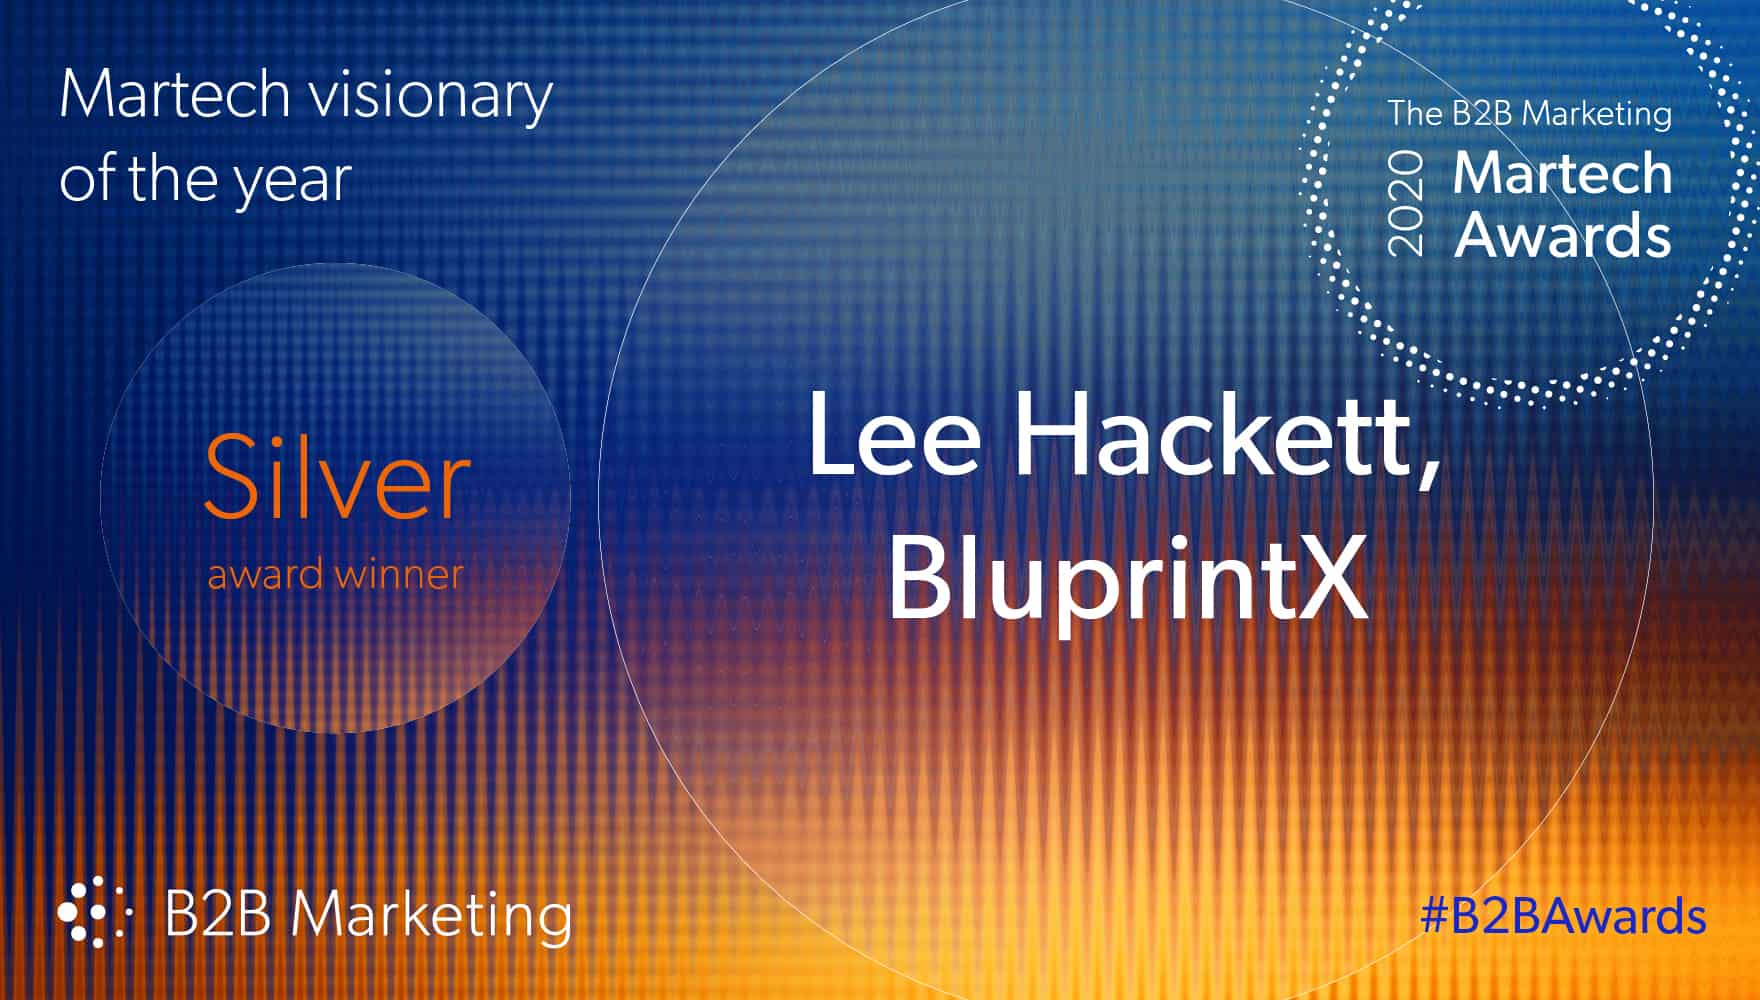 BluprintX CEO recognised as Martech Visionary